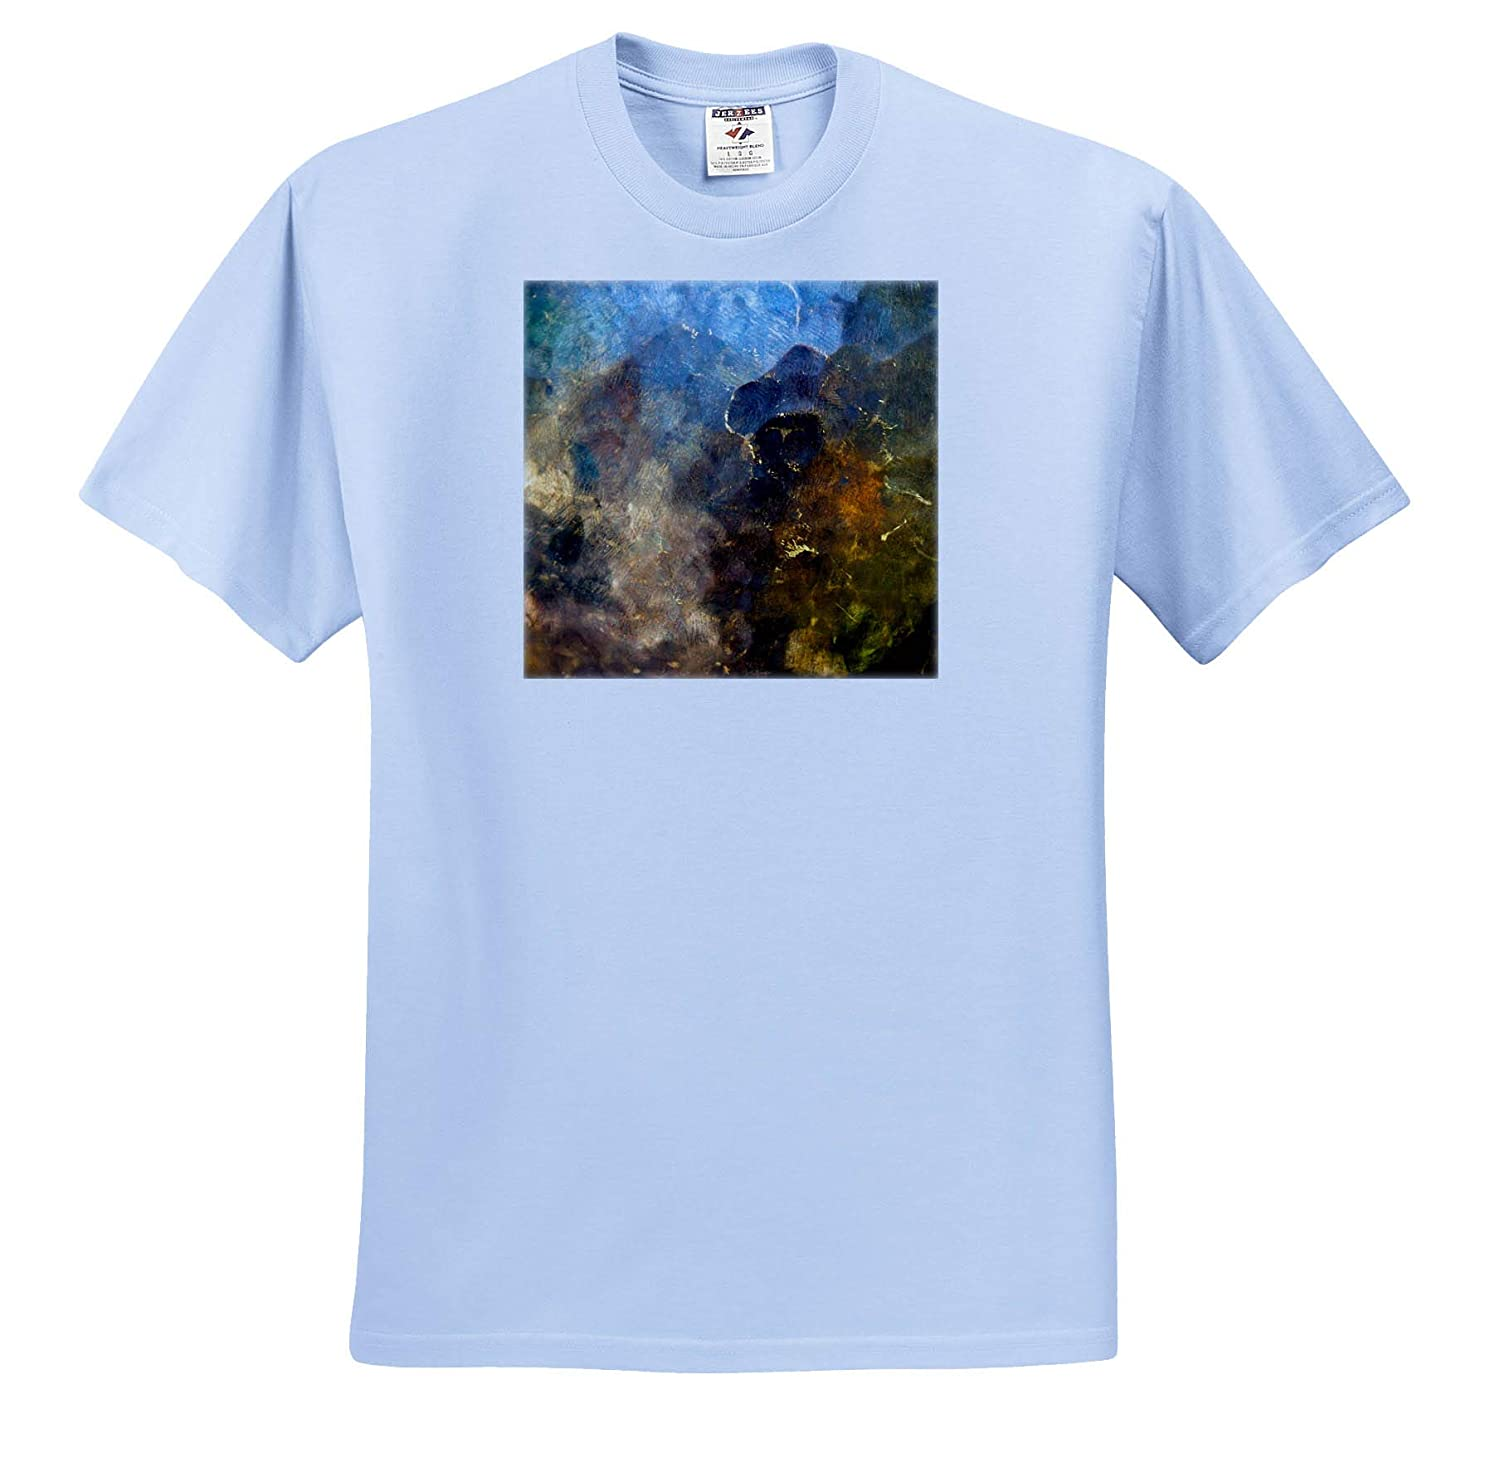 Image of Colorful Grunge T-Shirts Rough Bronze Texture 3dRose Alexis Photography Texture Metal